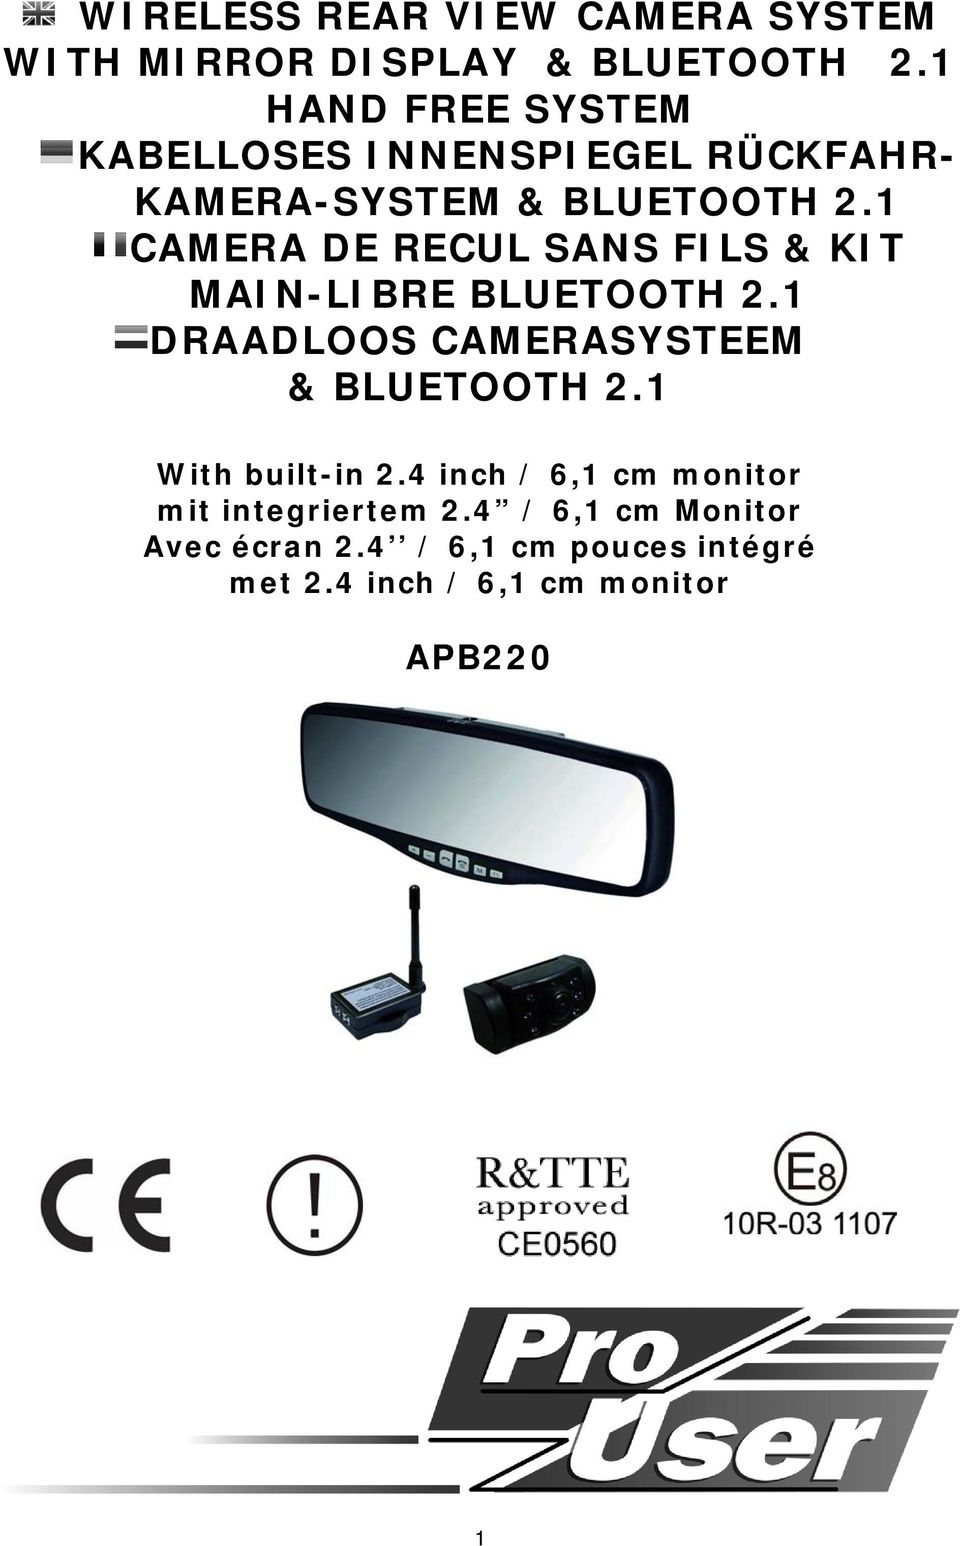 1 CAMERA DE RECUL SANS FILS & KIT MAIN-LIBRE BLUETOOTH 2.1 DRAADLOOS CAMERASYSTEEM & BLUETOOTH 2.